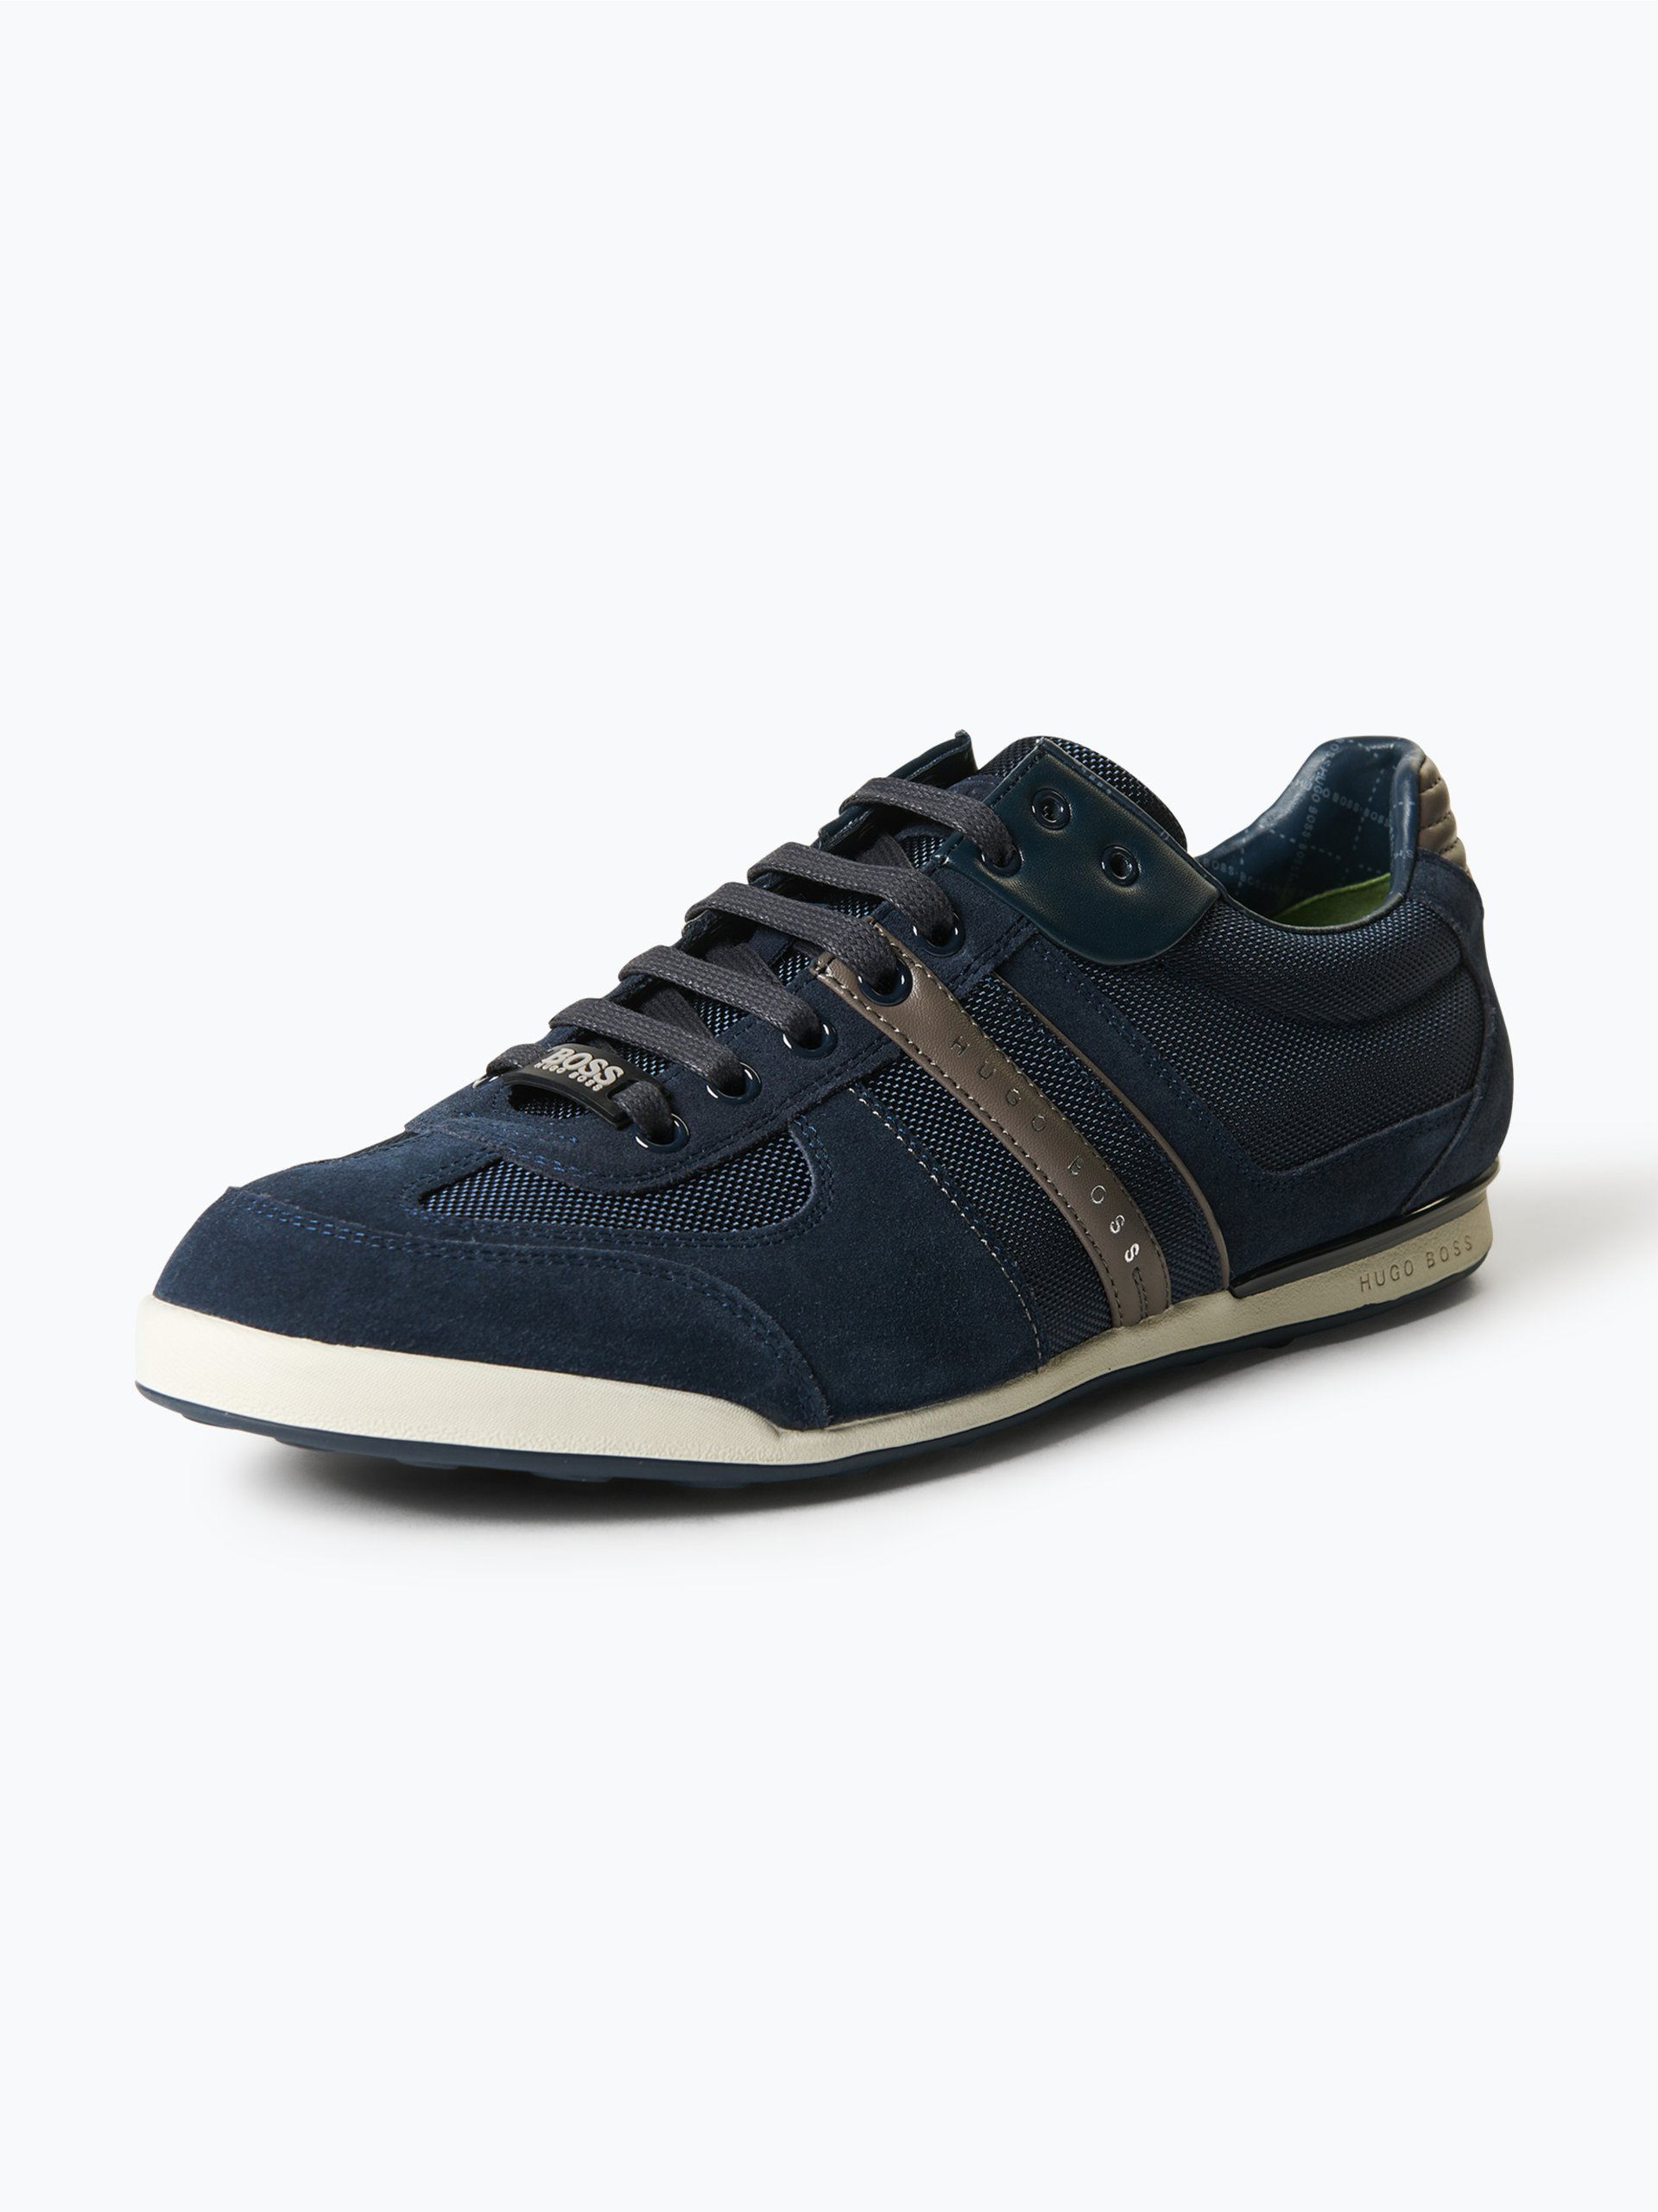 boss green herren sneaker mit leder anteil akeen blau. Black Bedroom Furniture Sets. Home Design Ideas